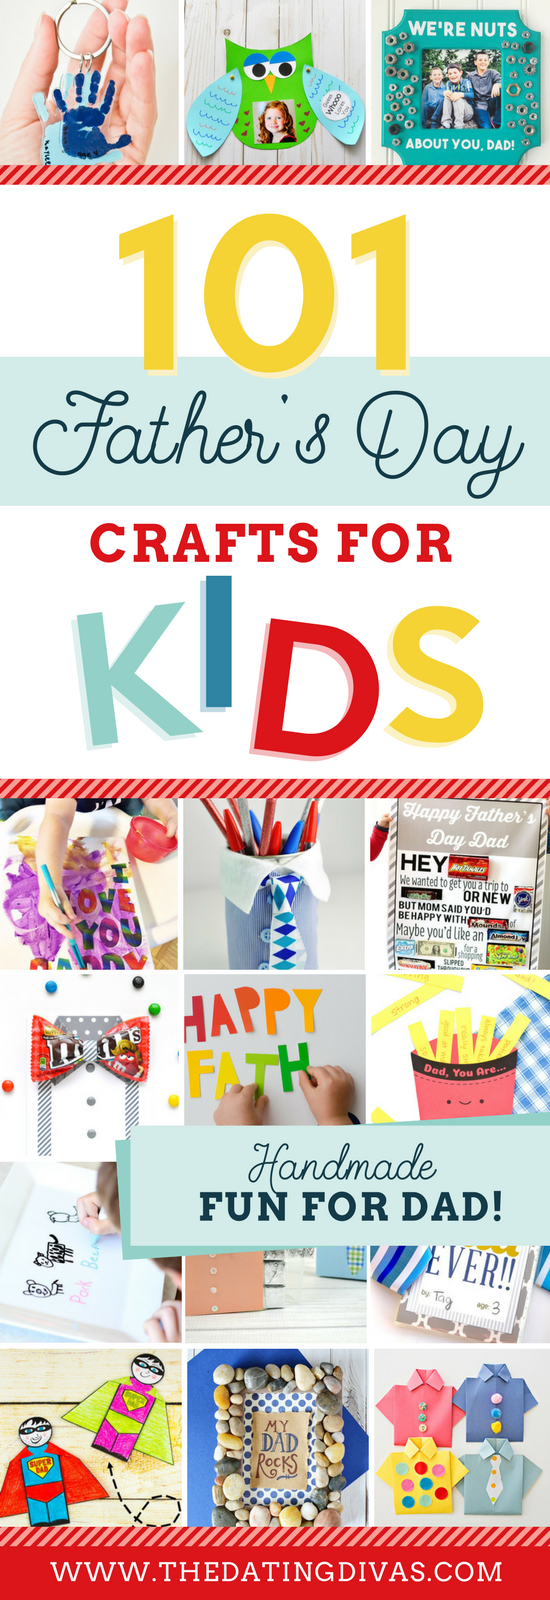 SO many great ideas for Father's Day crafts! My kiddos will love this! #